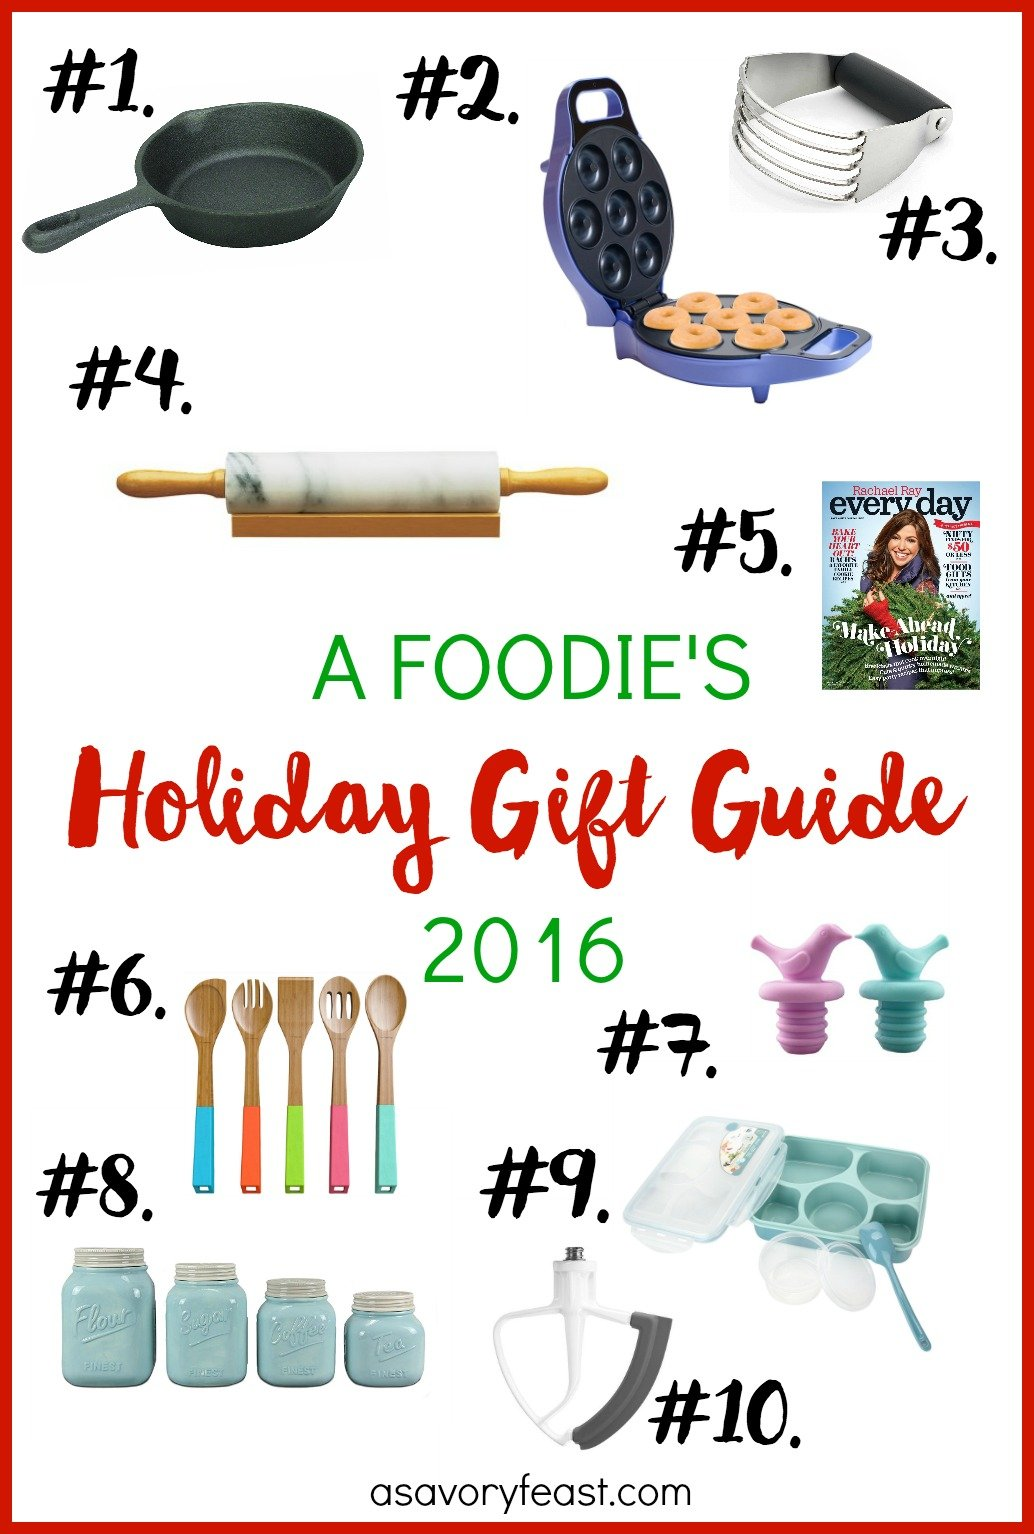 Does someone on your holiday shopping list love to cook (or just loves to eat?)? Check out A Savory Feast's Foodie's Holiday Gift Guide 2016 for lots of great gift ideas. Any of these suggestions will delight any foodie this Christmas season.